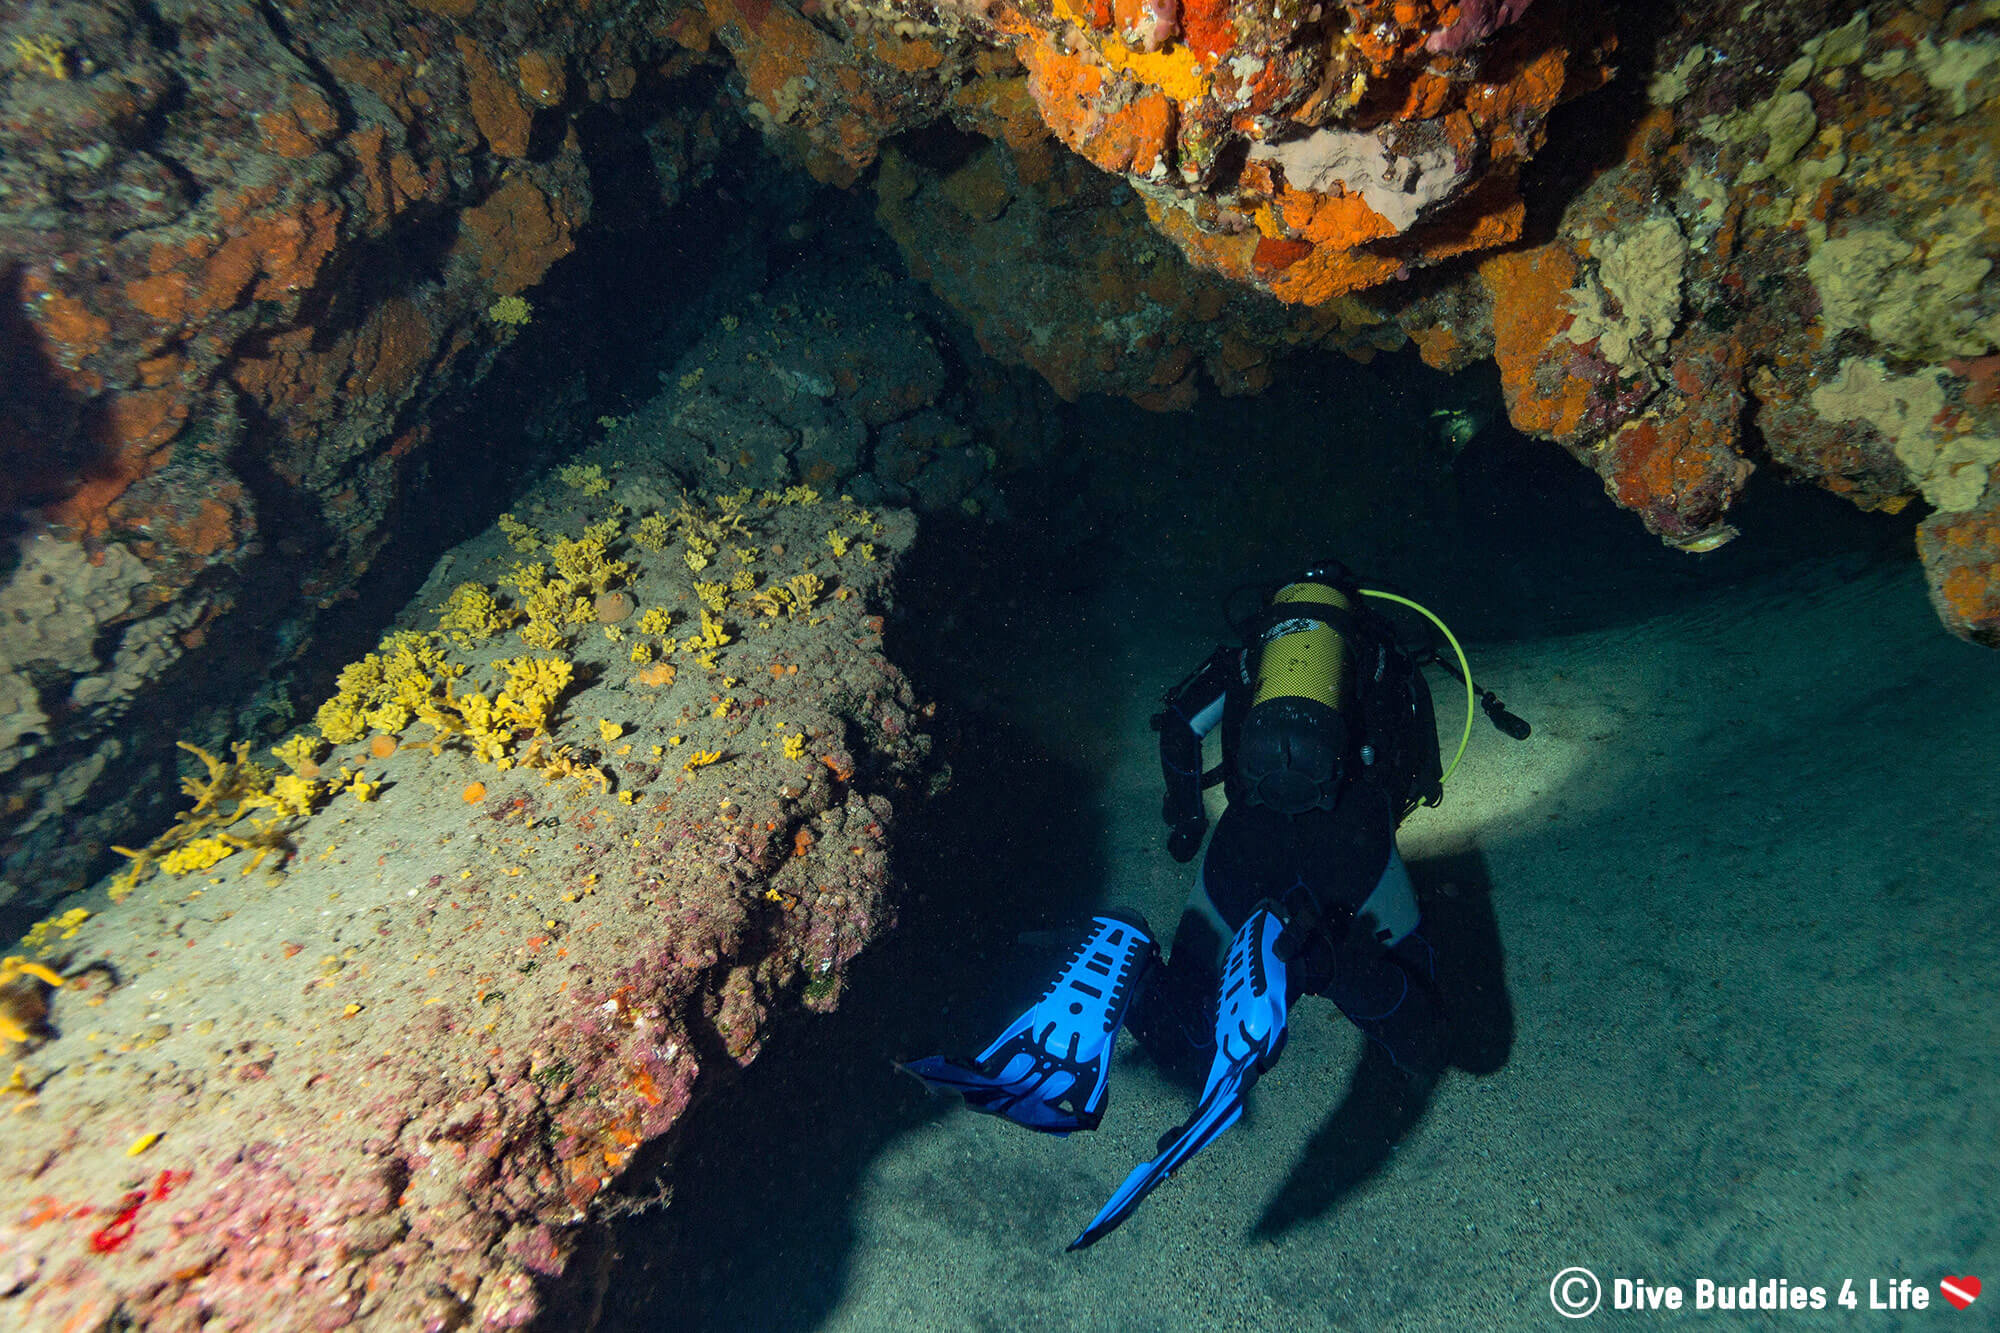 Joey Exploring A Cave On Lanzarote In His Scuba Gear, Canary Islands, Spain